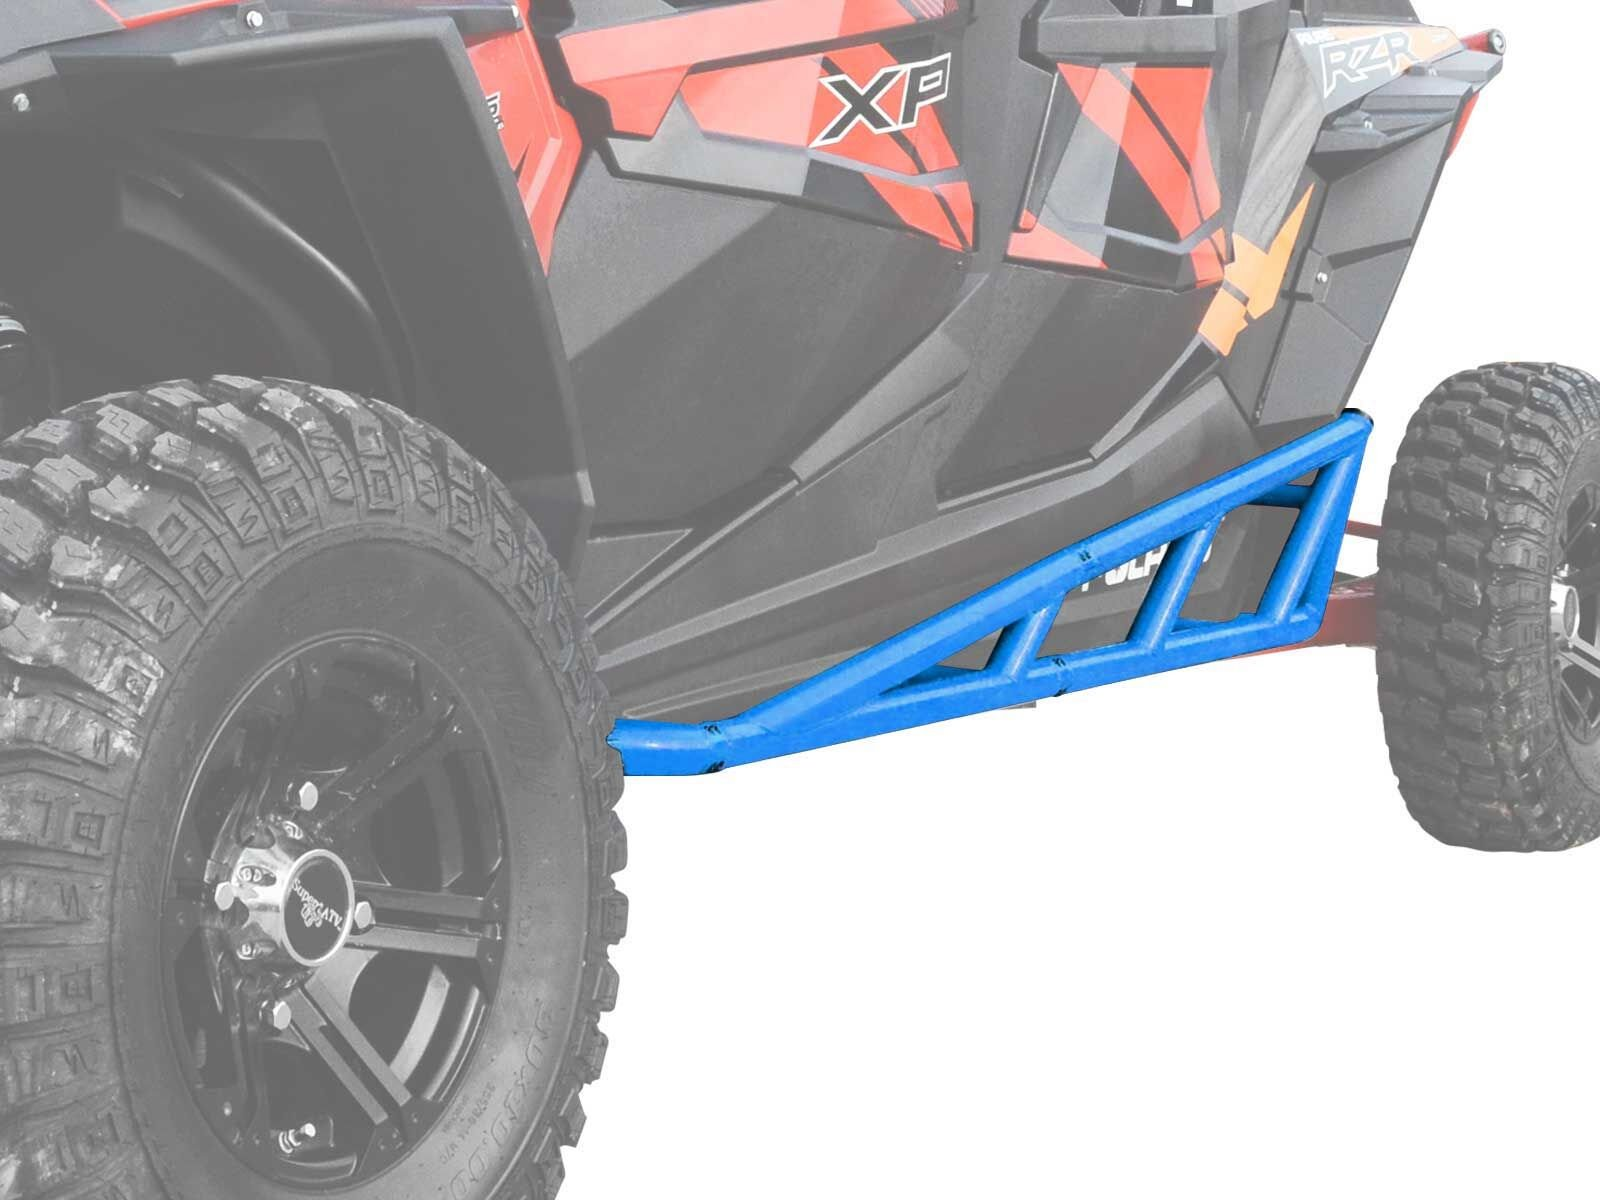 SuperATV Nerf Bars/Tree Kickers/Rock Sliders for Polaris RZR XP 4 1000 (2014+) - Velocity/Voodoo Blue - Compatible With Our Full Protection Kit!